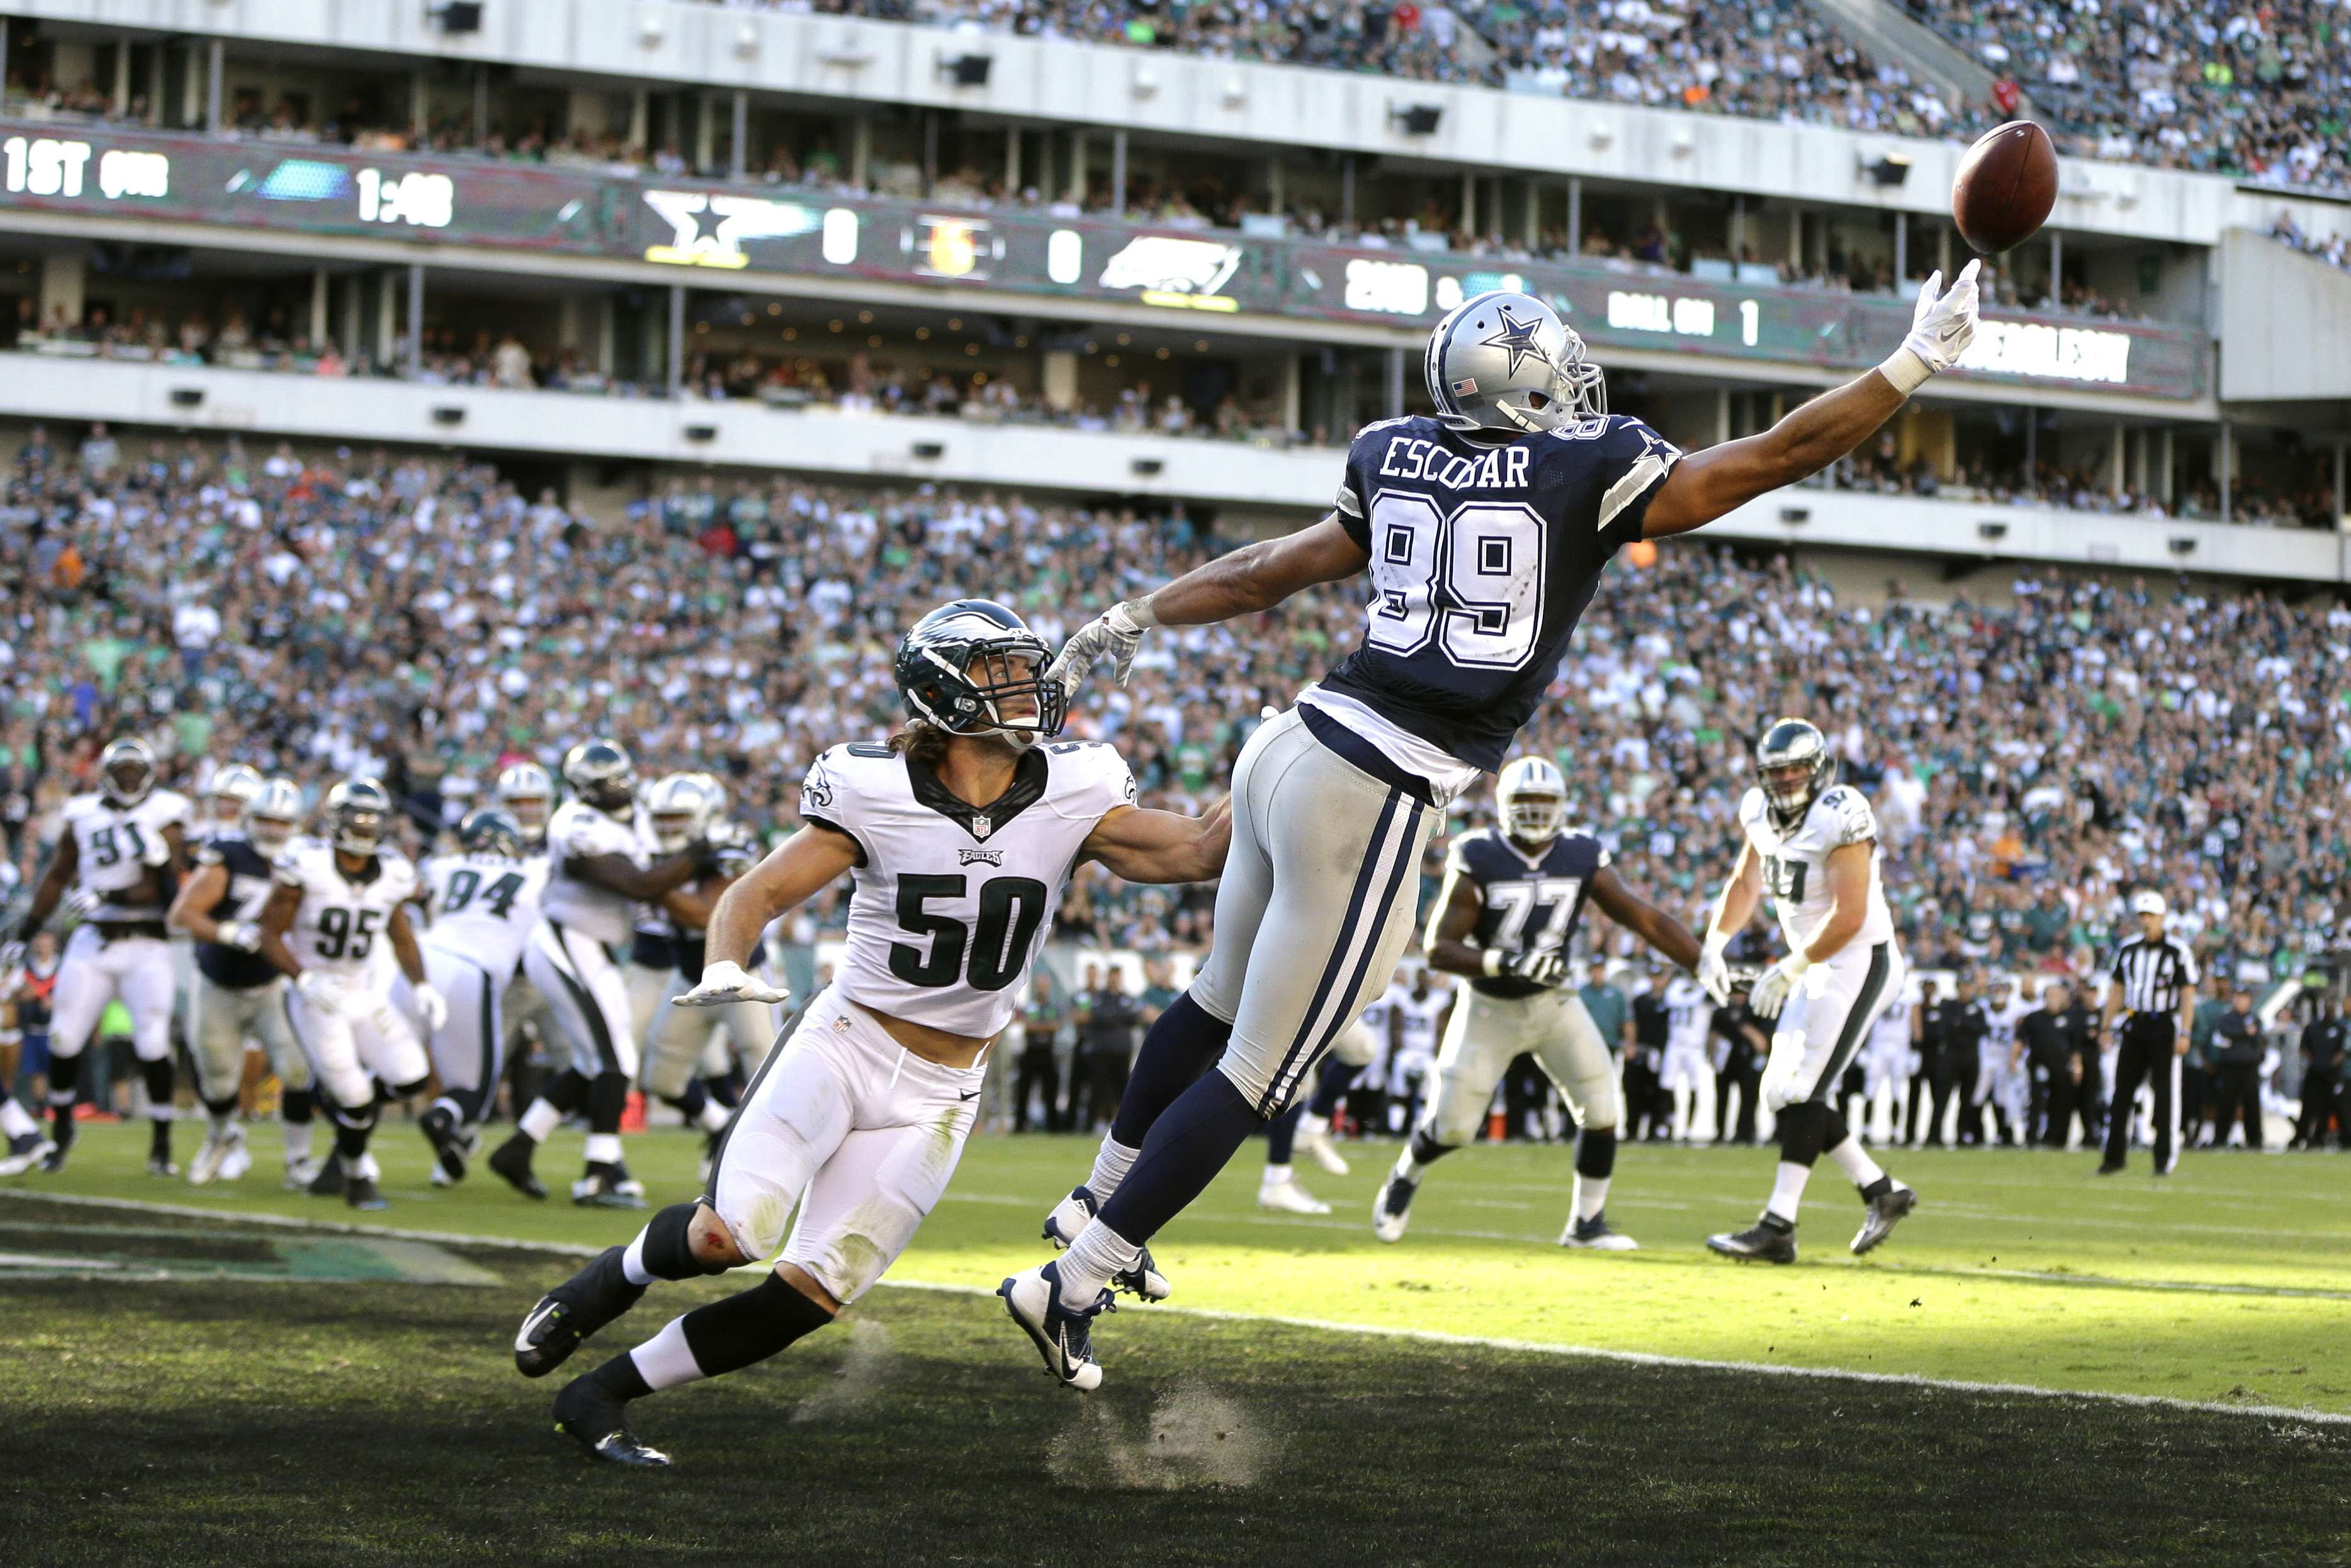 Dallas Cowboys' Gavin Escobar (89) cannot reach a pass in the end zone as Philadelphia Eagles' Kiko Alonso (50) looks on during the first half of an NFL football game, Sunday, Sept. 20, 2015, in Philadelphia. (AP Photo/Matt Rourke)